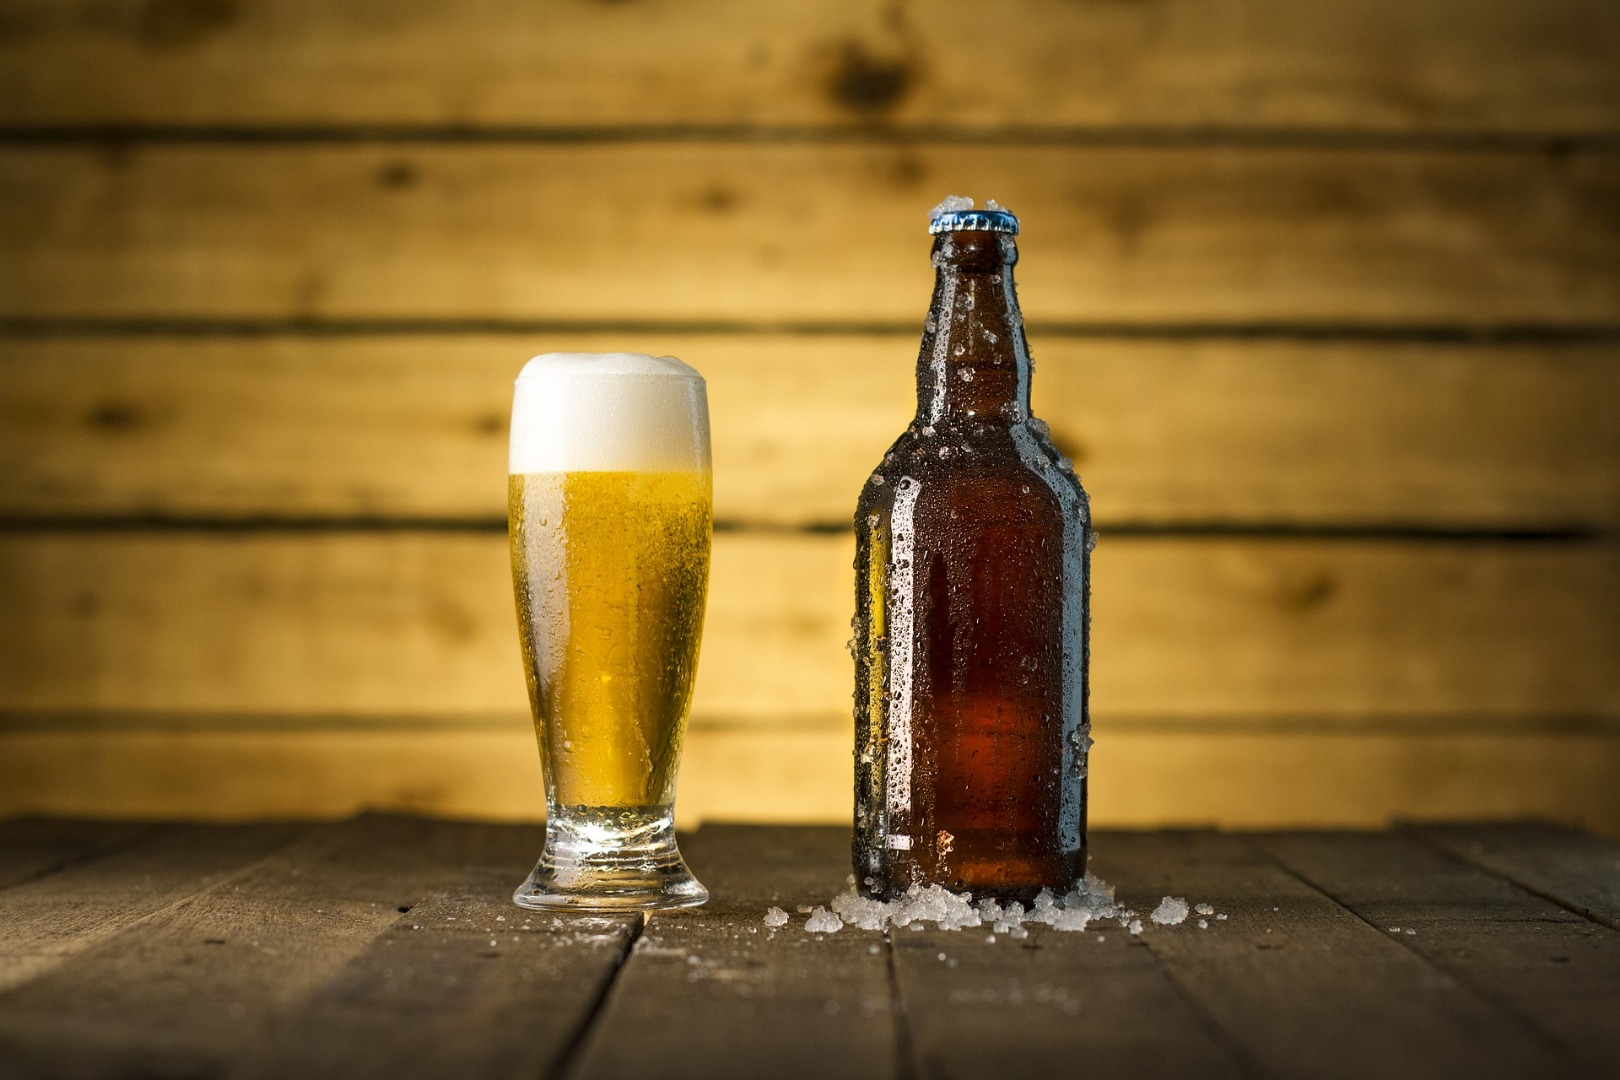 Vocational Qualifications for Breweries